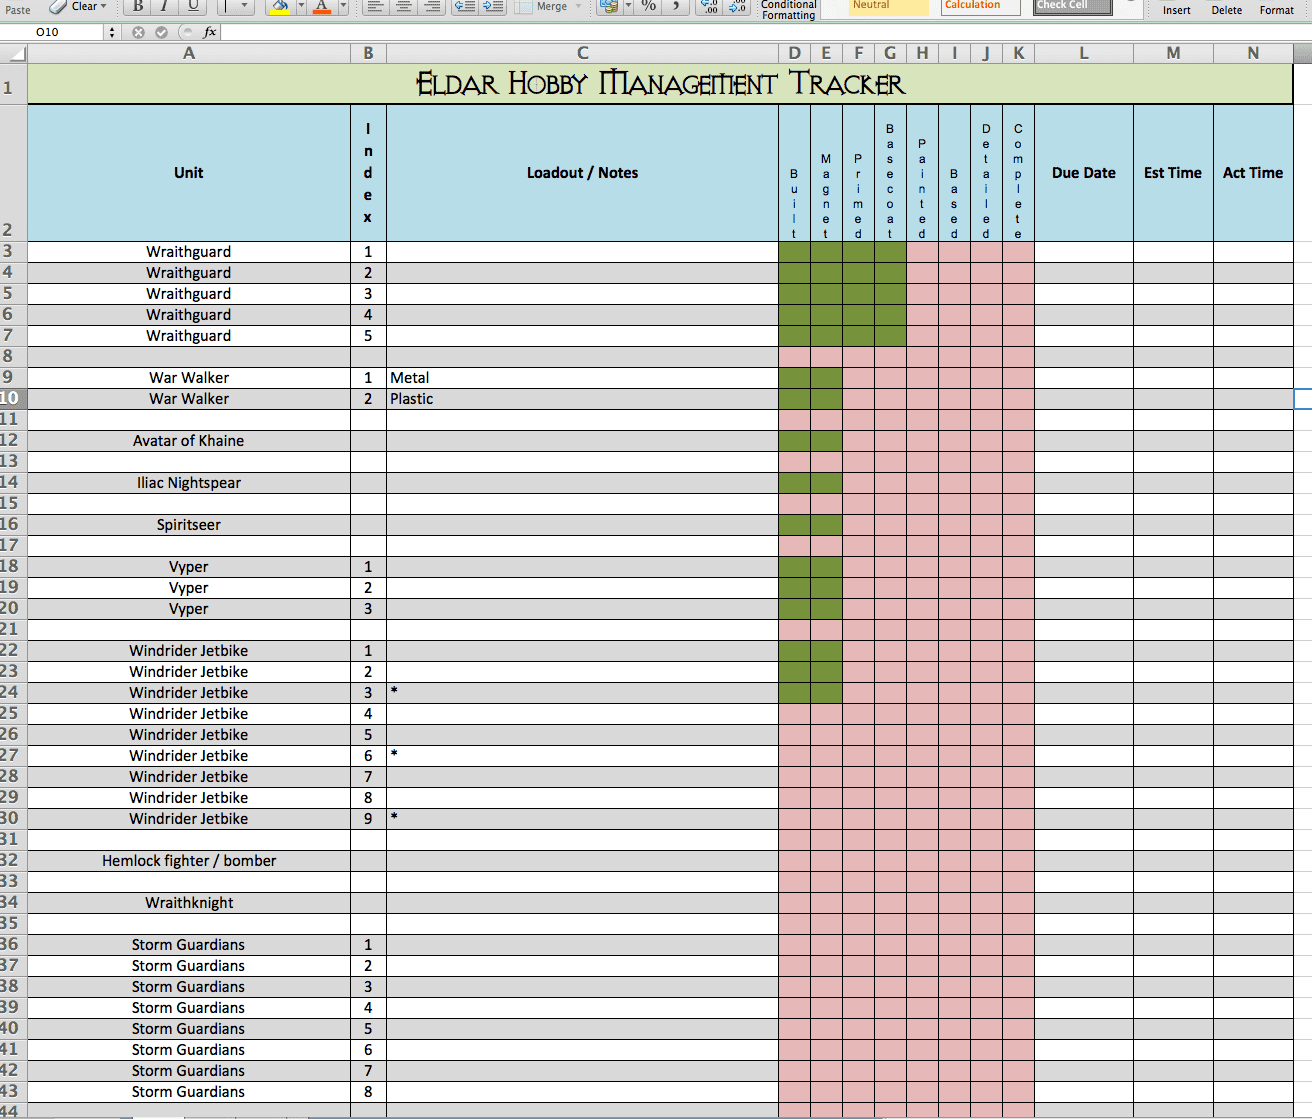 Free Sales Tracking Spreadsheet Template And Sales Tracking Template Sales Tracking Report Template And Sales Tracking Software Applicant Tracking Spreadsheet Template And Sales Lead Tracking Form Inventory Tracking Spreadsheet Template And Sales Rep Tracking Spreadsheet Template Free Sales Tracker Template And Lead Tracking Spreadsheet Template Sales Rep Tracking Spreadsheet Template And Expense Tracking Spreadsheet Template Sales Tracking Software And Lead Tracking Template